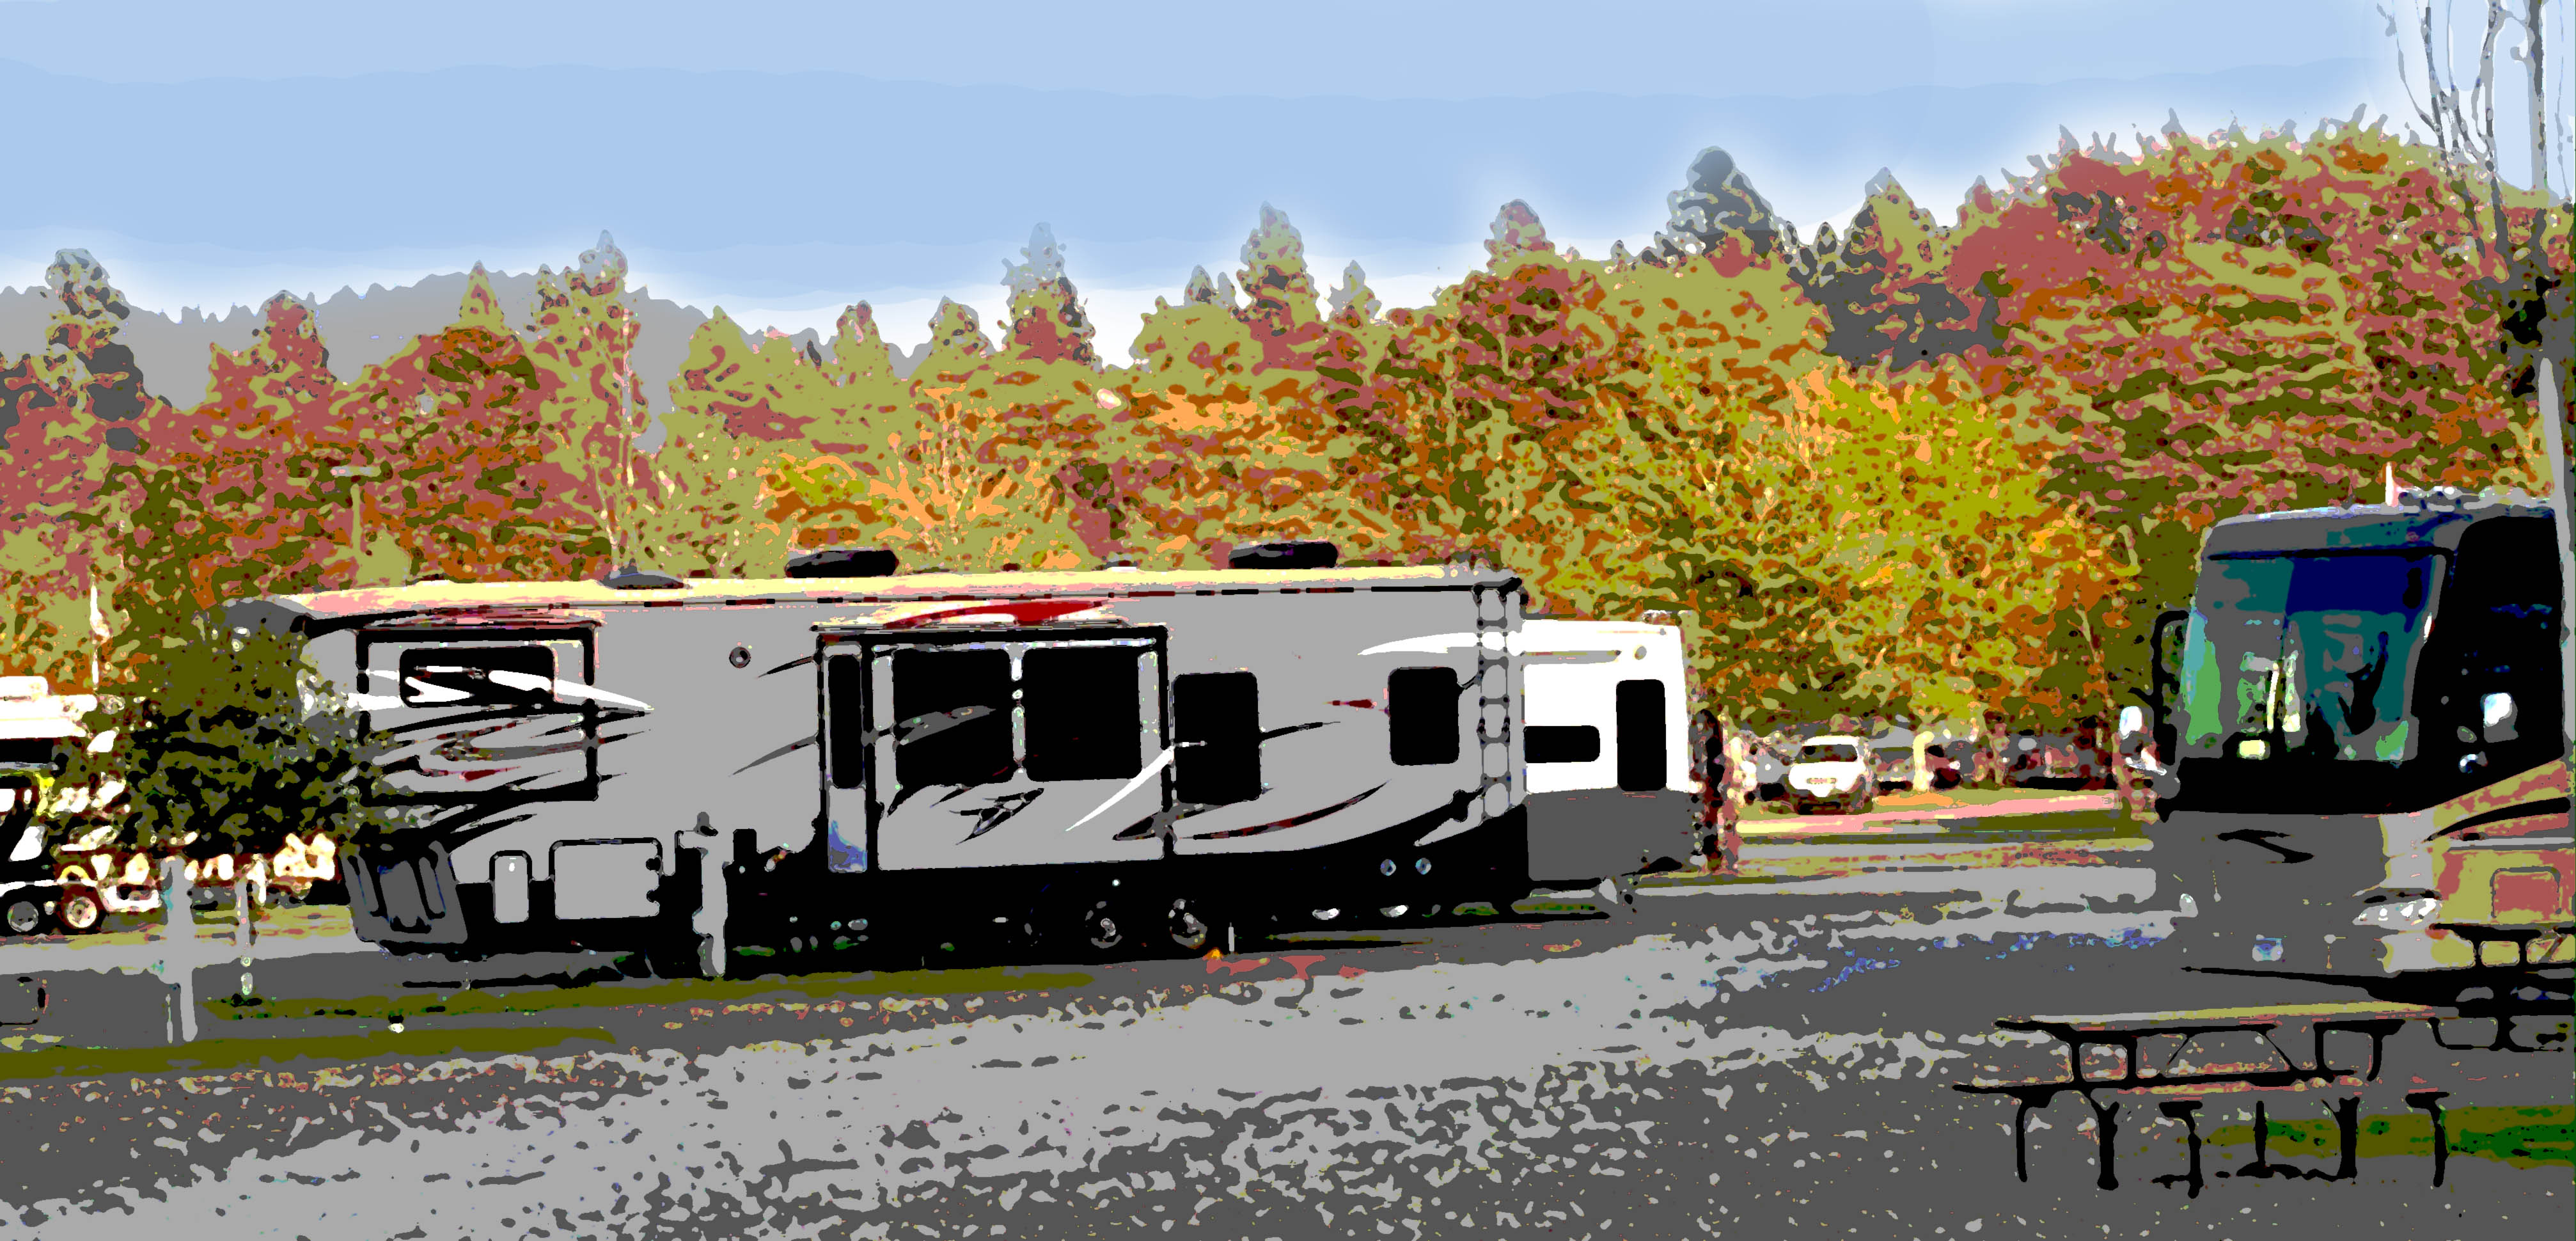 RV Park, RV, Rving,RV Nation,RV Trip, RV Travel,Rvers,Mission Positive Films,The Celebration Tour,winnebago